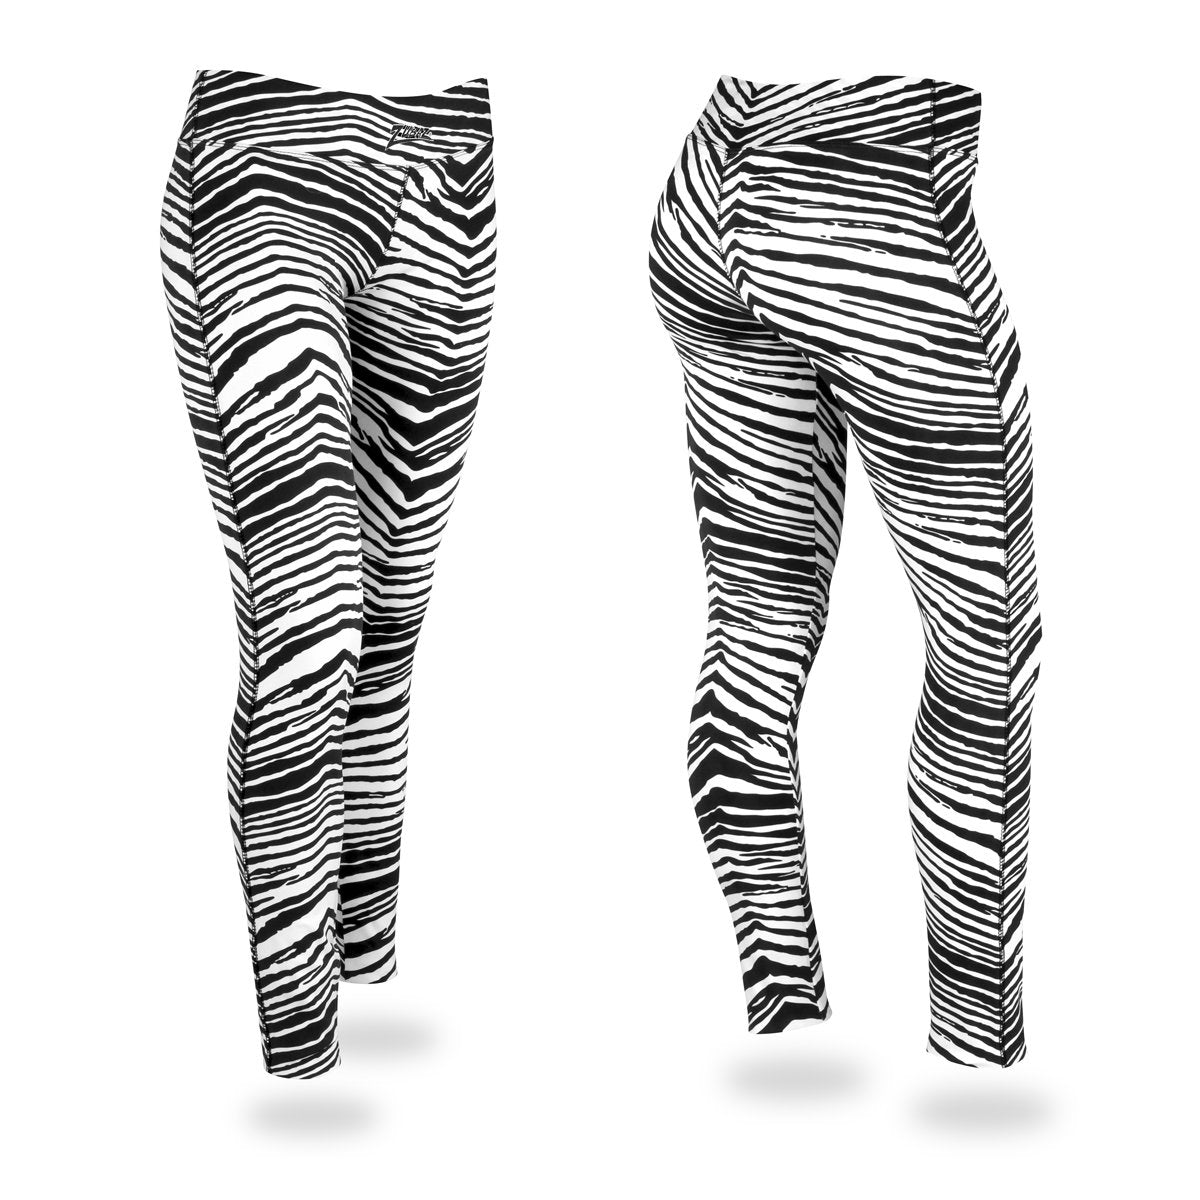 Zubaz Zebra Print Slim Fit Trousers For Ladies-NA9252